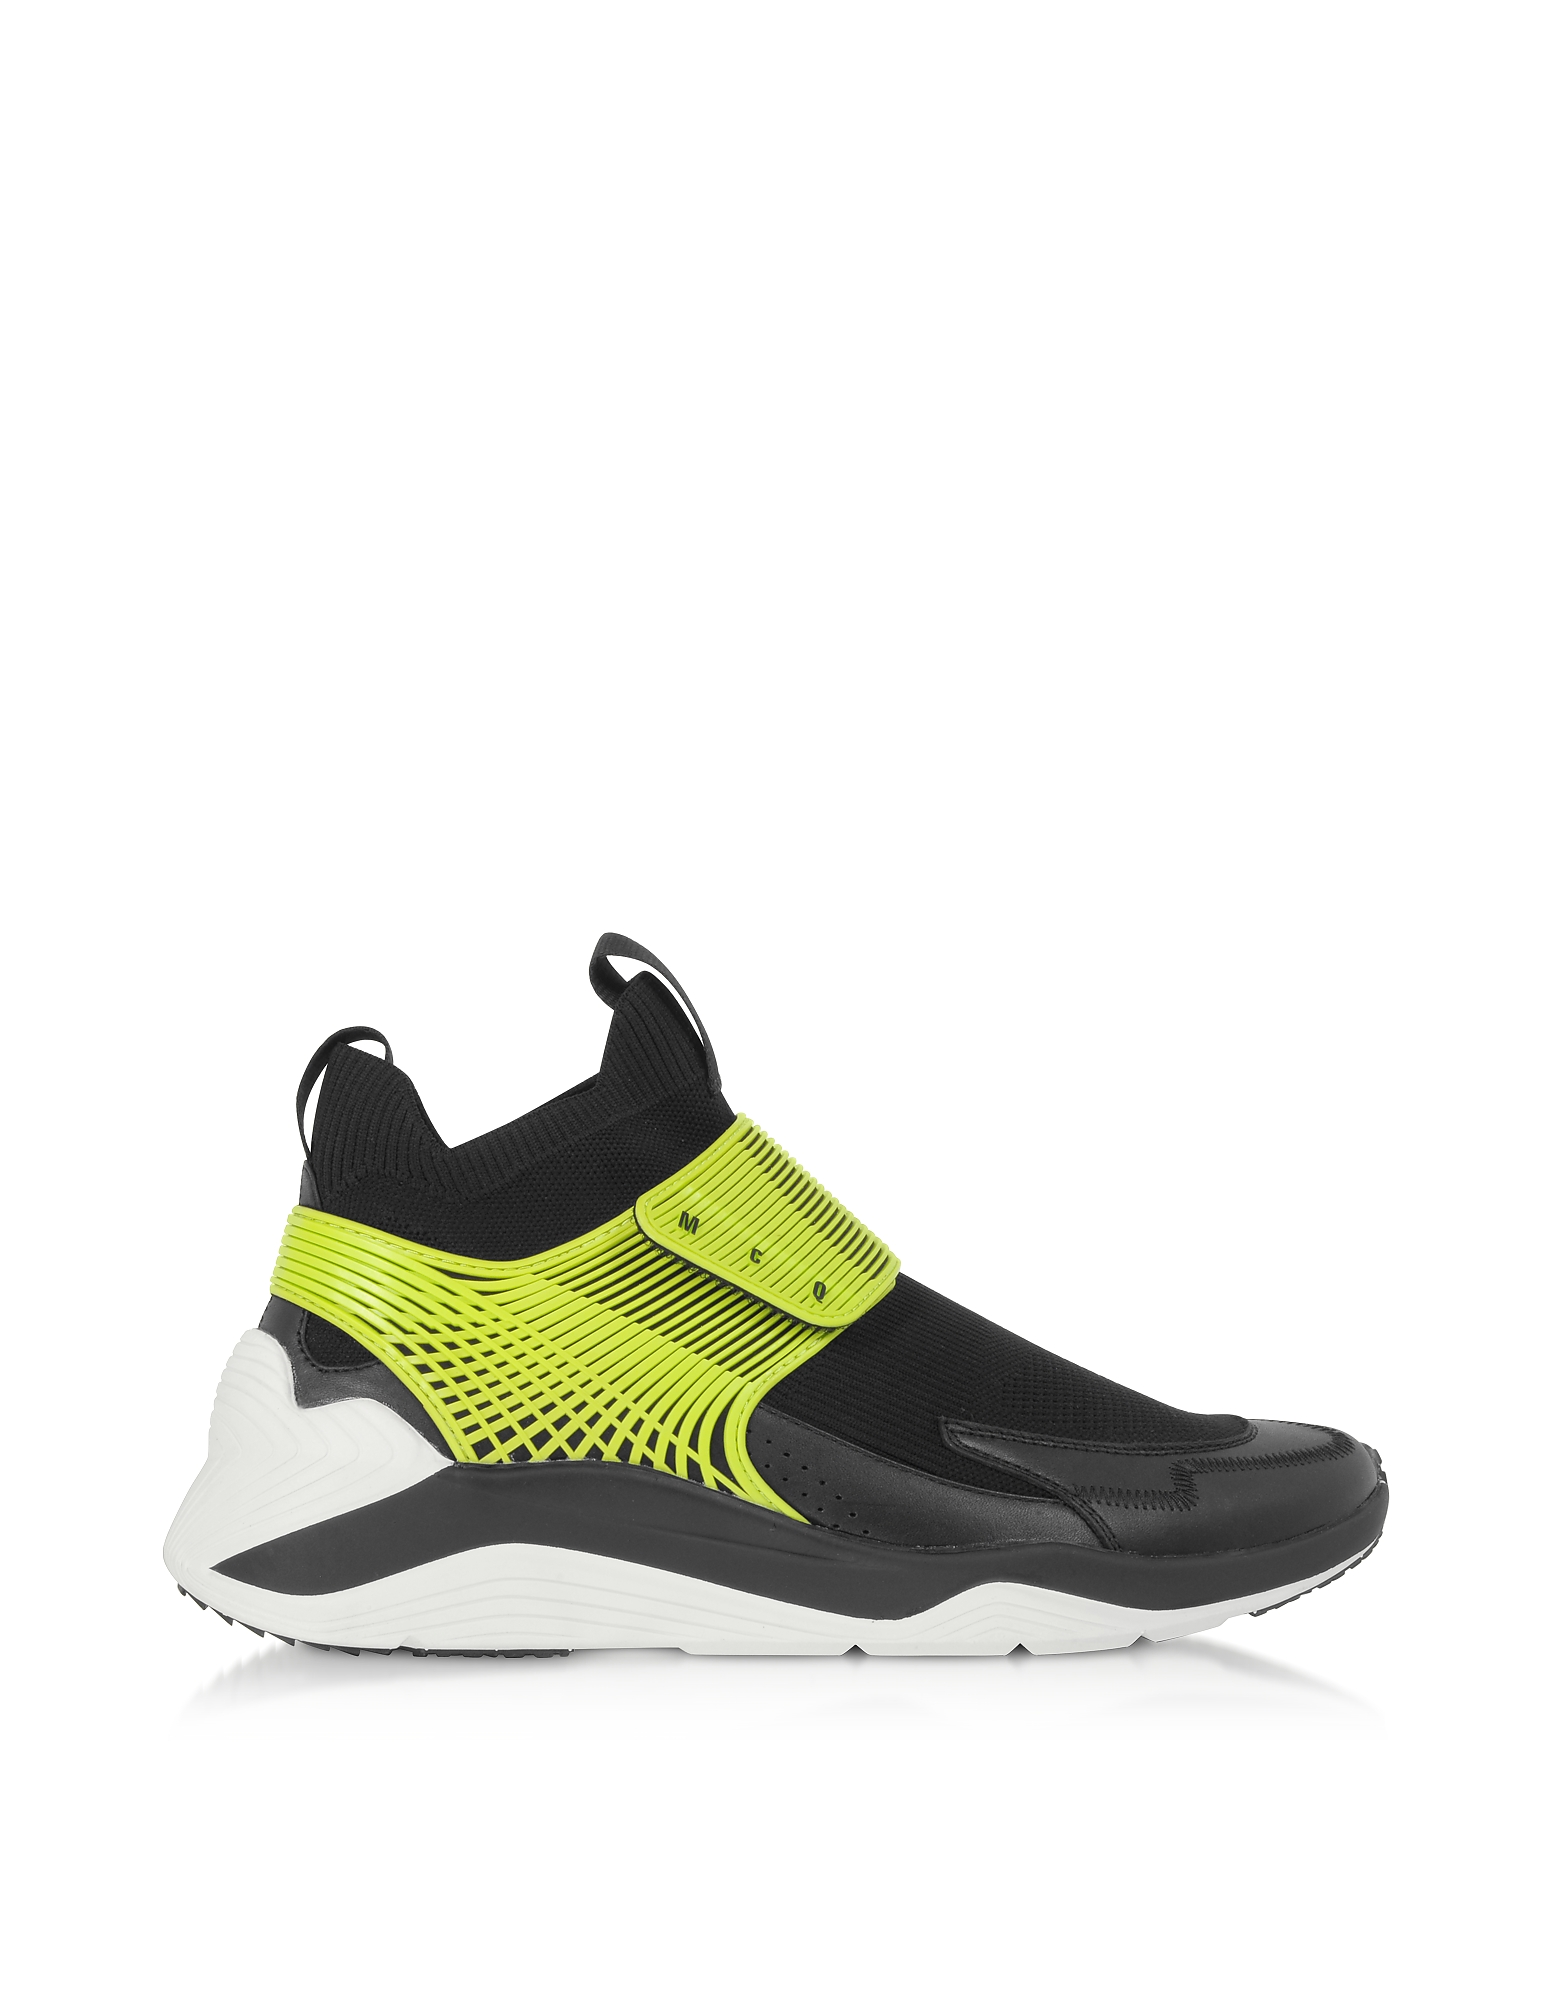 McQ Alexander McQueen Designer Shoes, Hikaru 3.0 Black Lime Calf Leather and Fabric Men's Sneakers